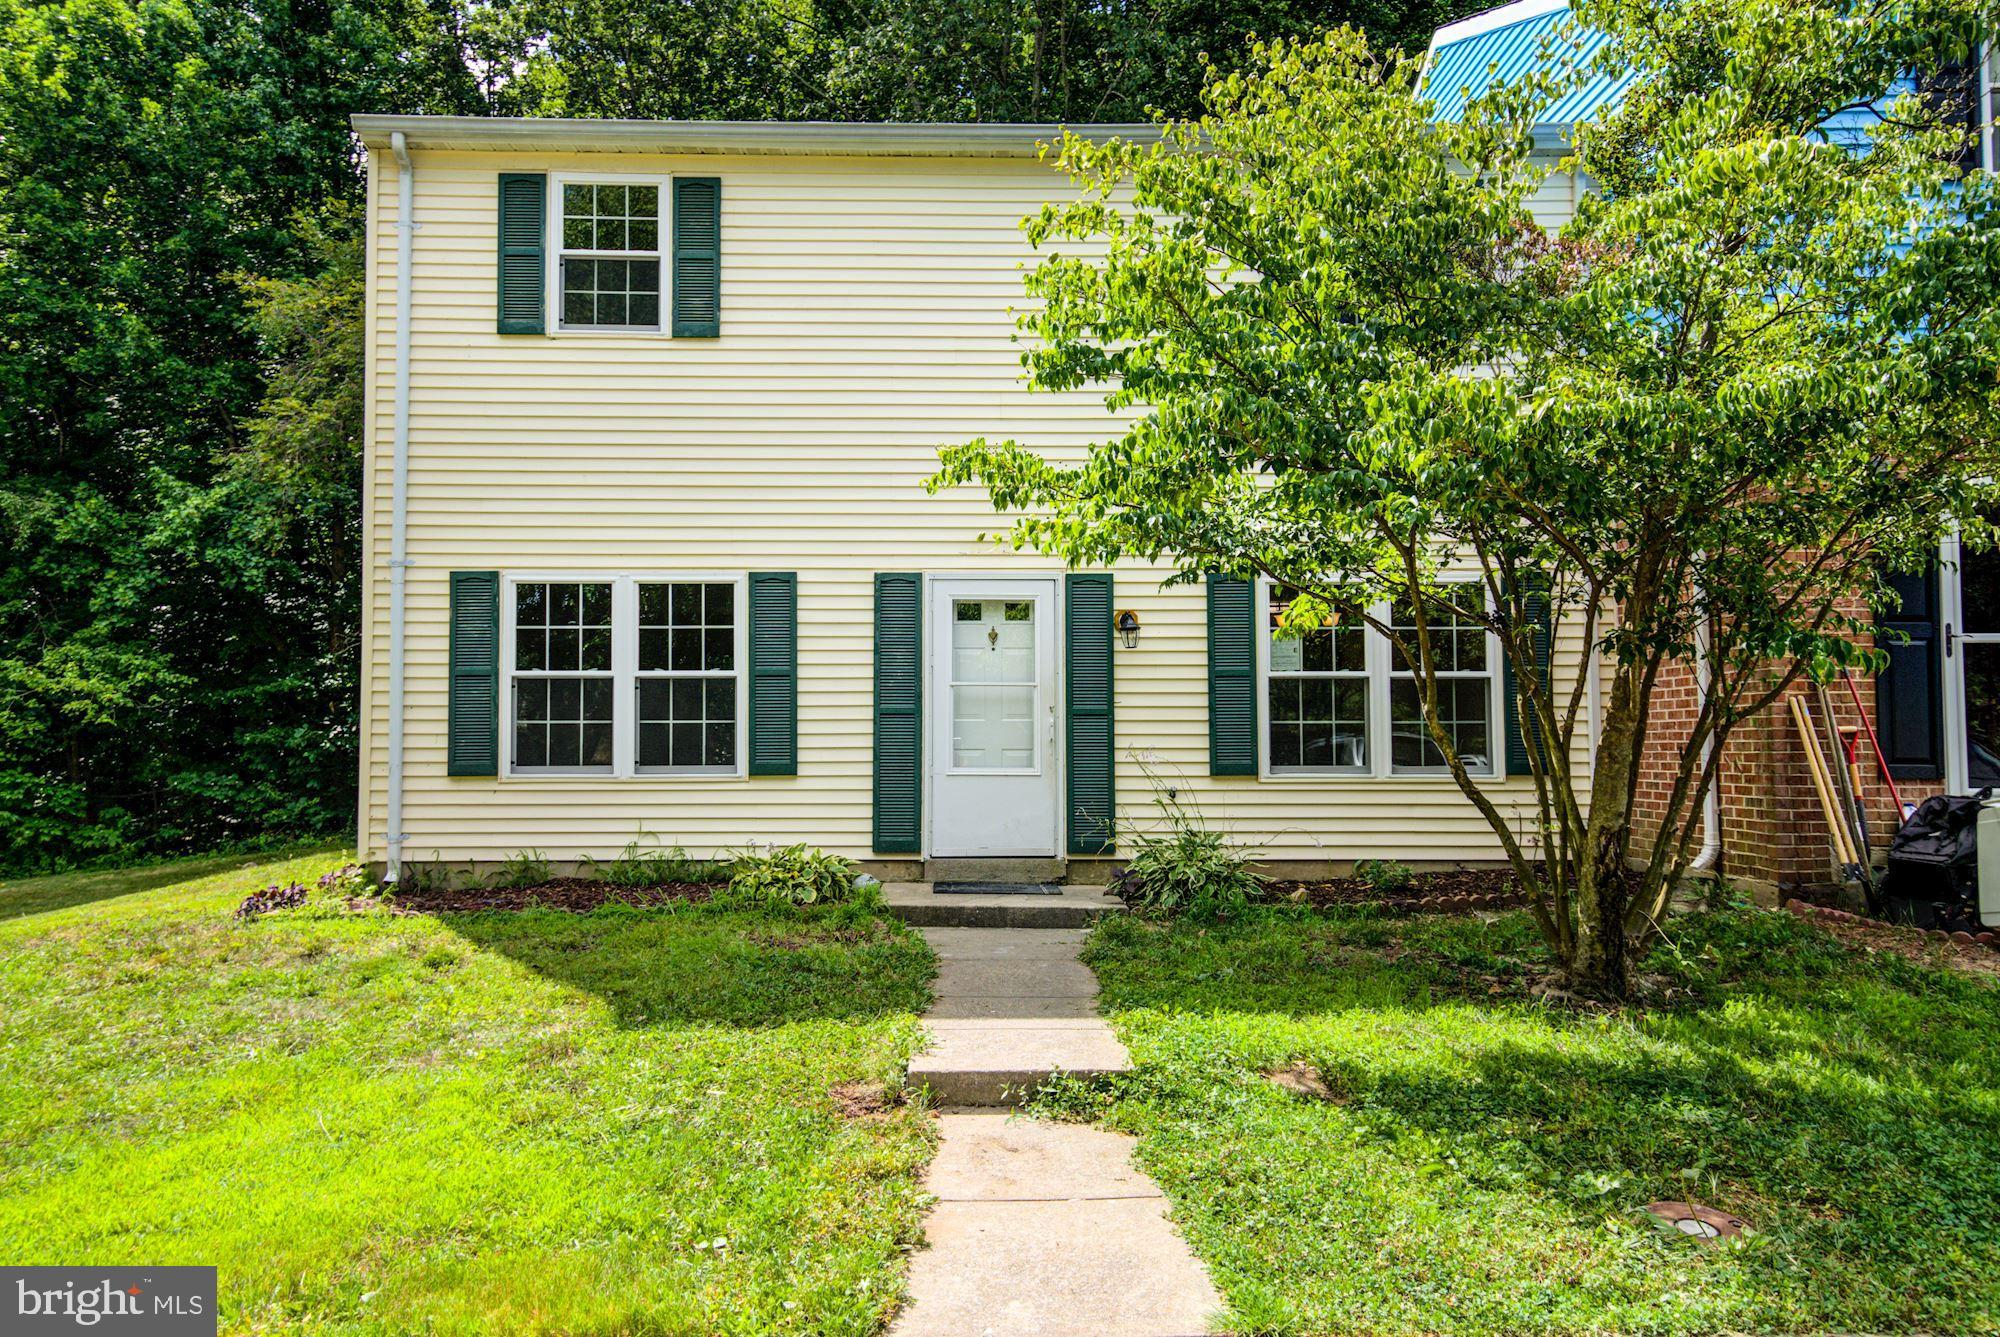 Fully Remodeled END UNIT Townhouse with 3 bedrooms and 2.5 baths! All NEW flooring, paint, cabinets,